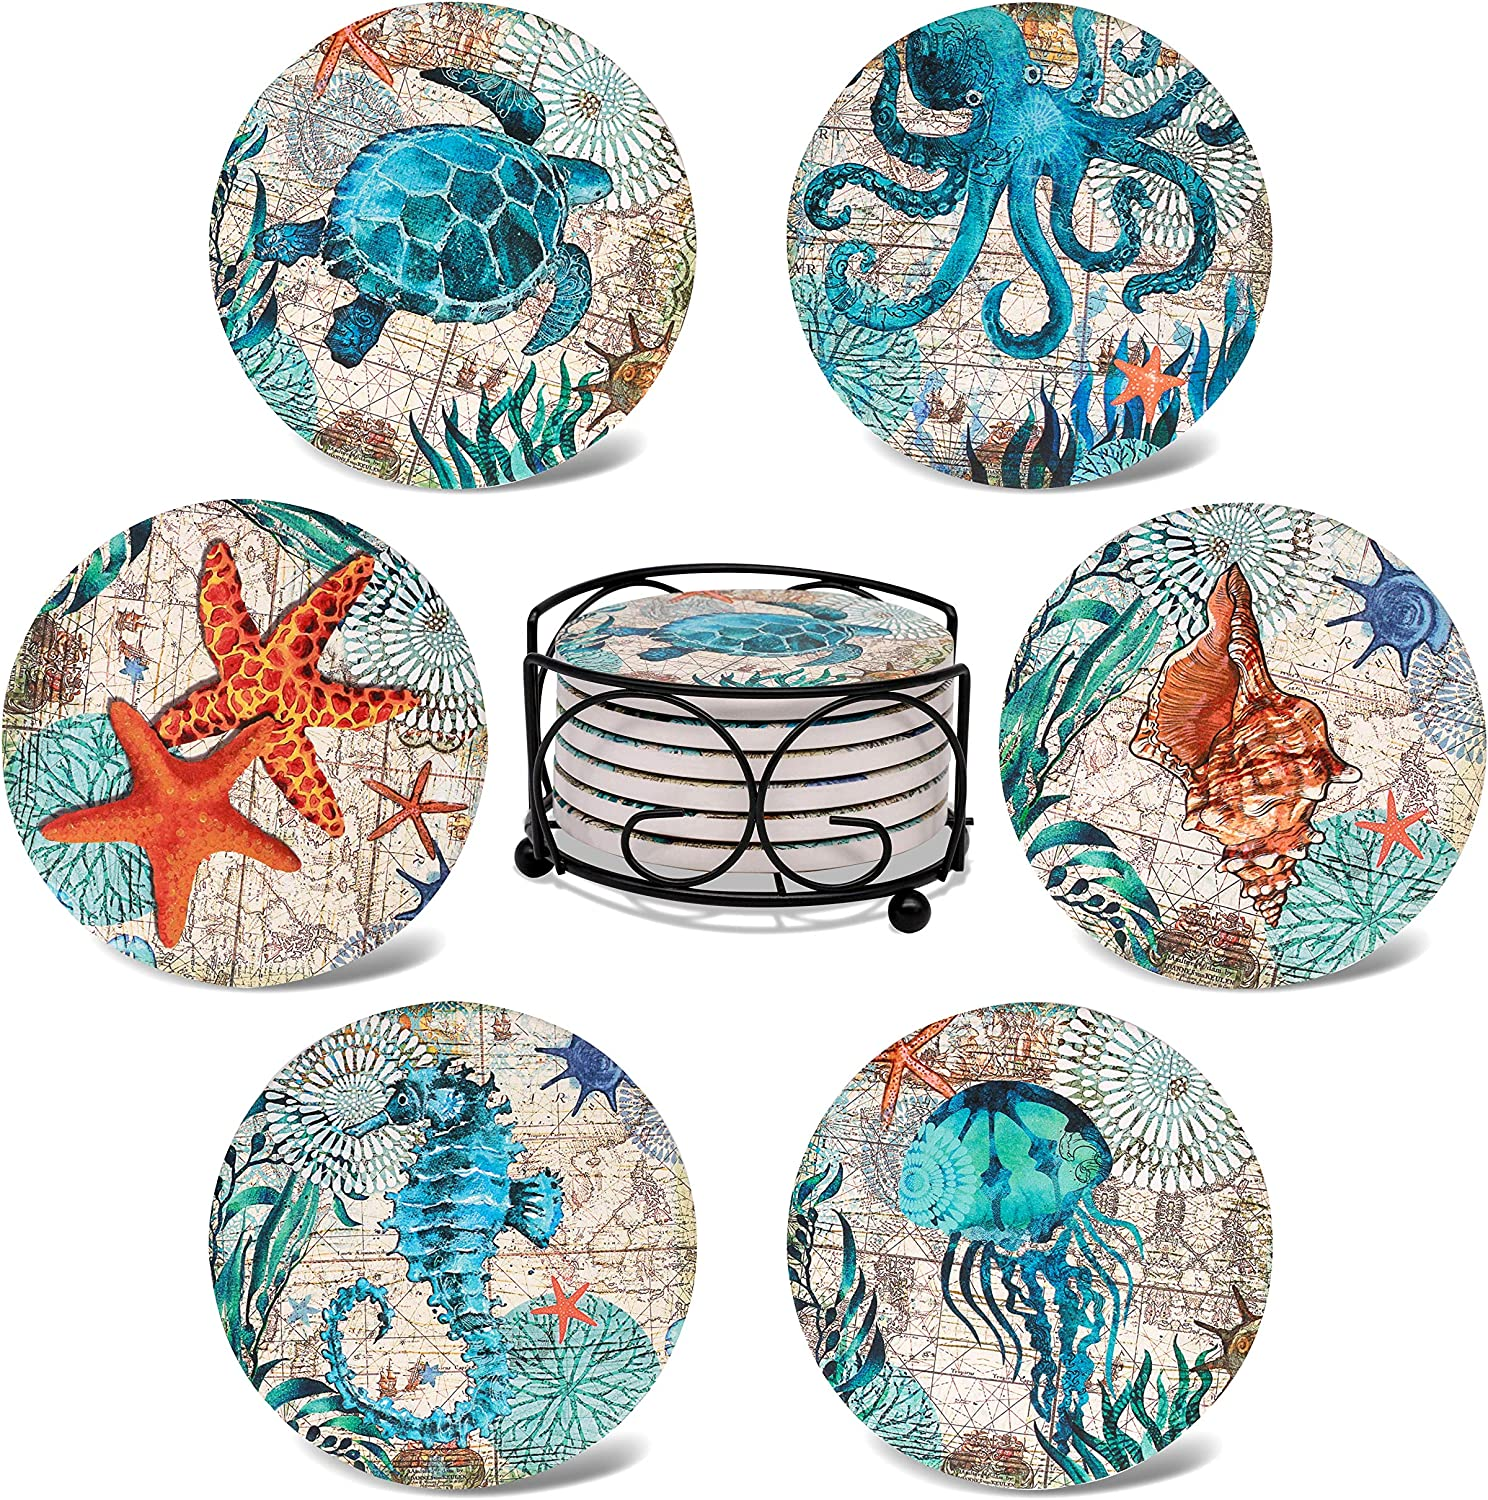 Skafil Coasters for Drinks Absorbent with Holder,Set of 6 Ceramic Drink Coasters Funny, Absorbent Stone Coaster Set Cork Base (6P-Sea)